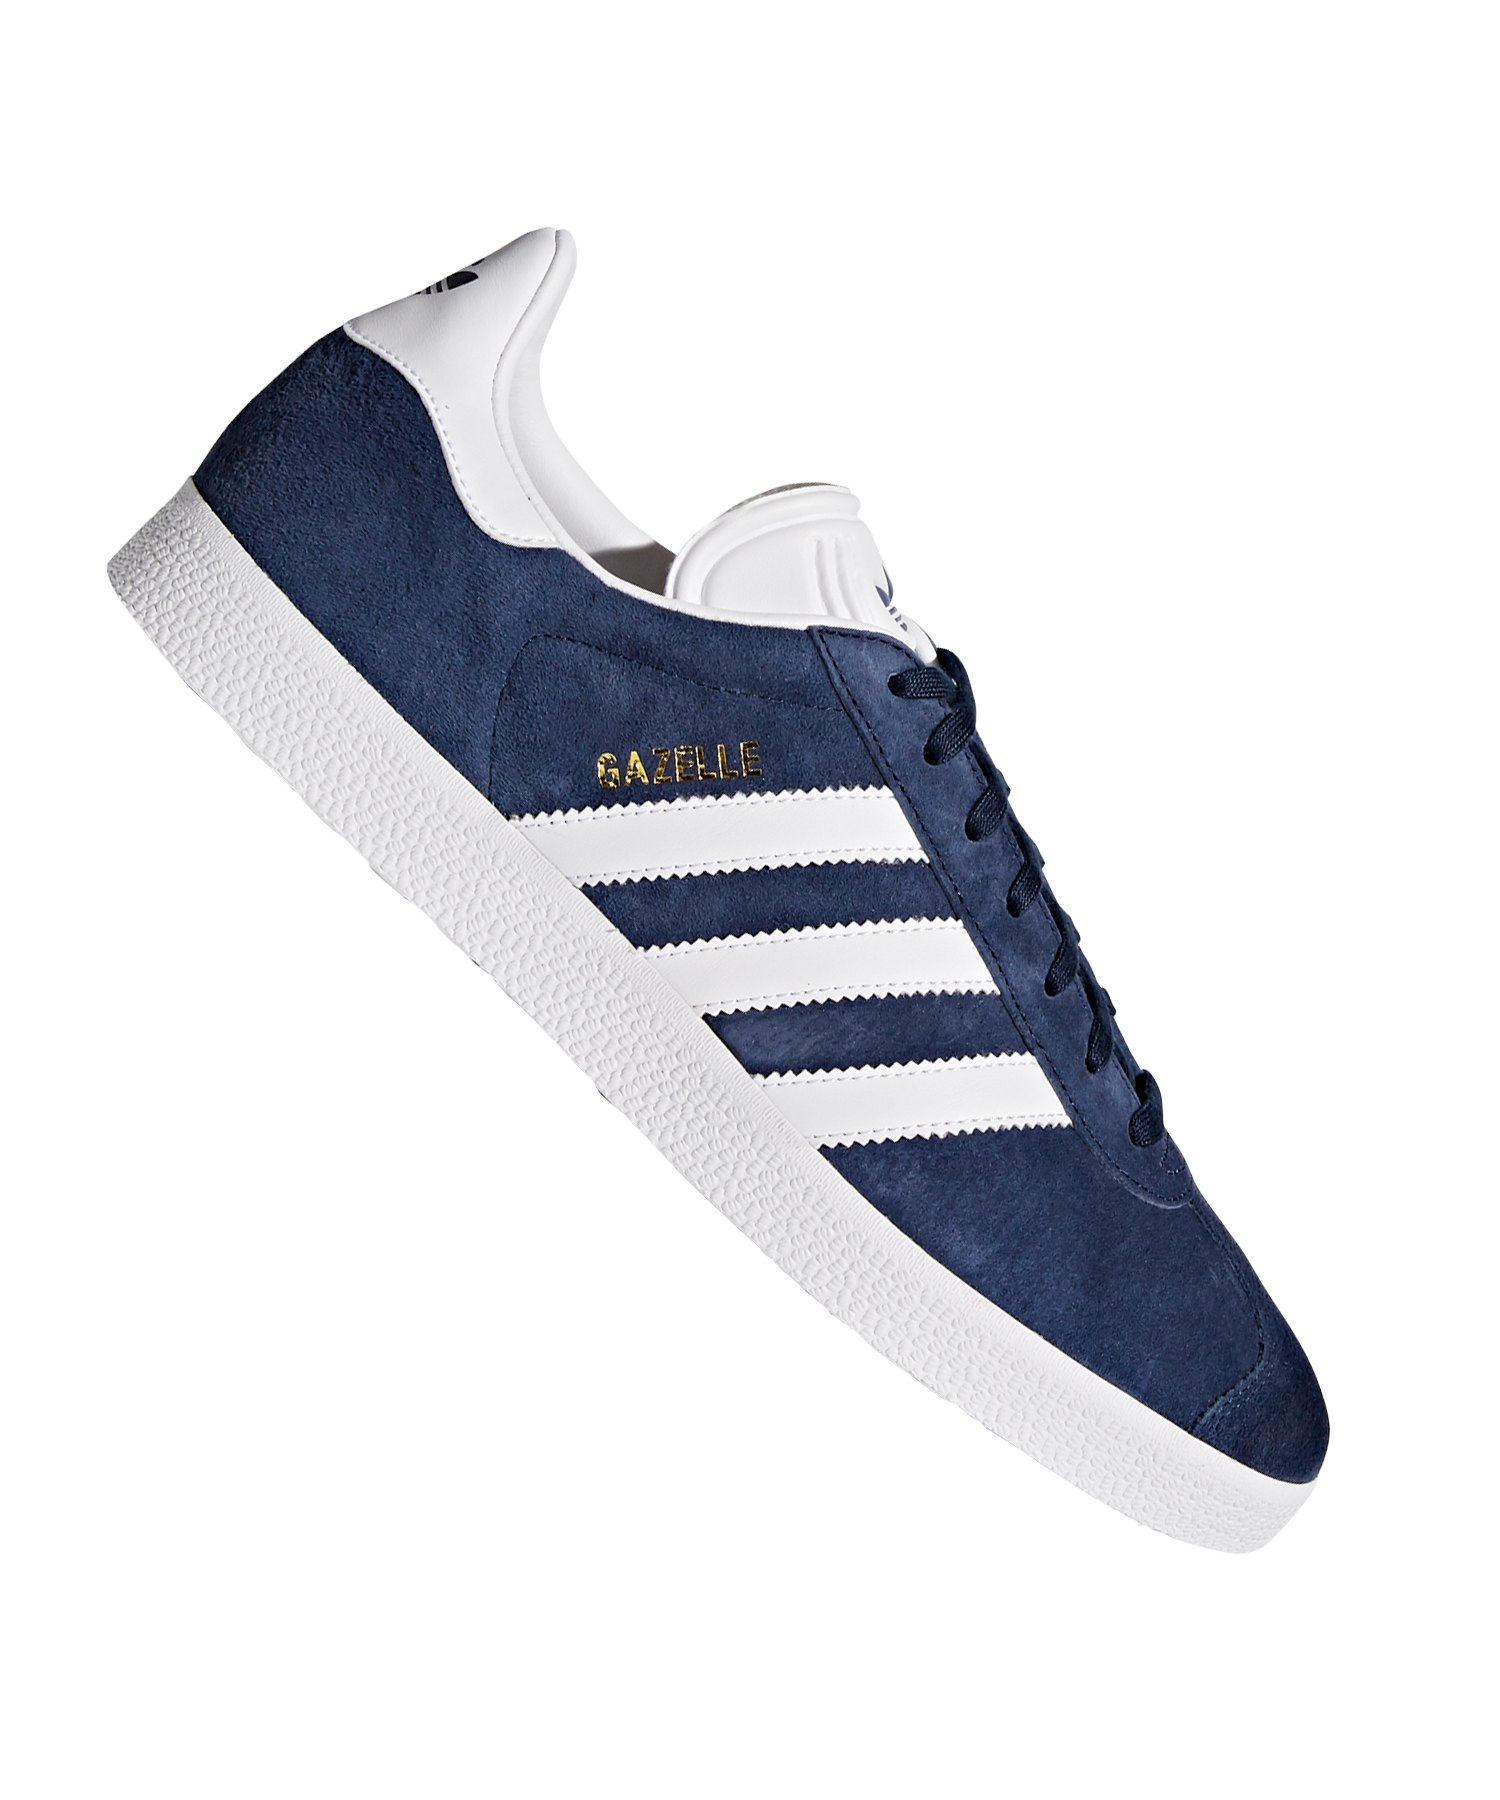 adidas Originals Gazelle Sneaker Blau Weiss